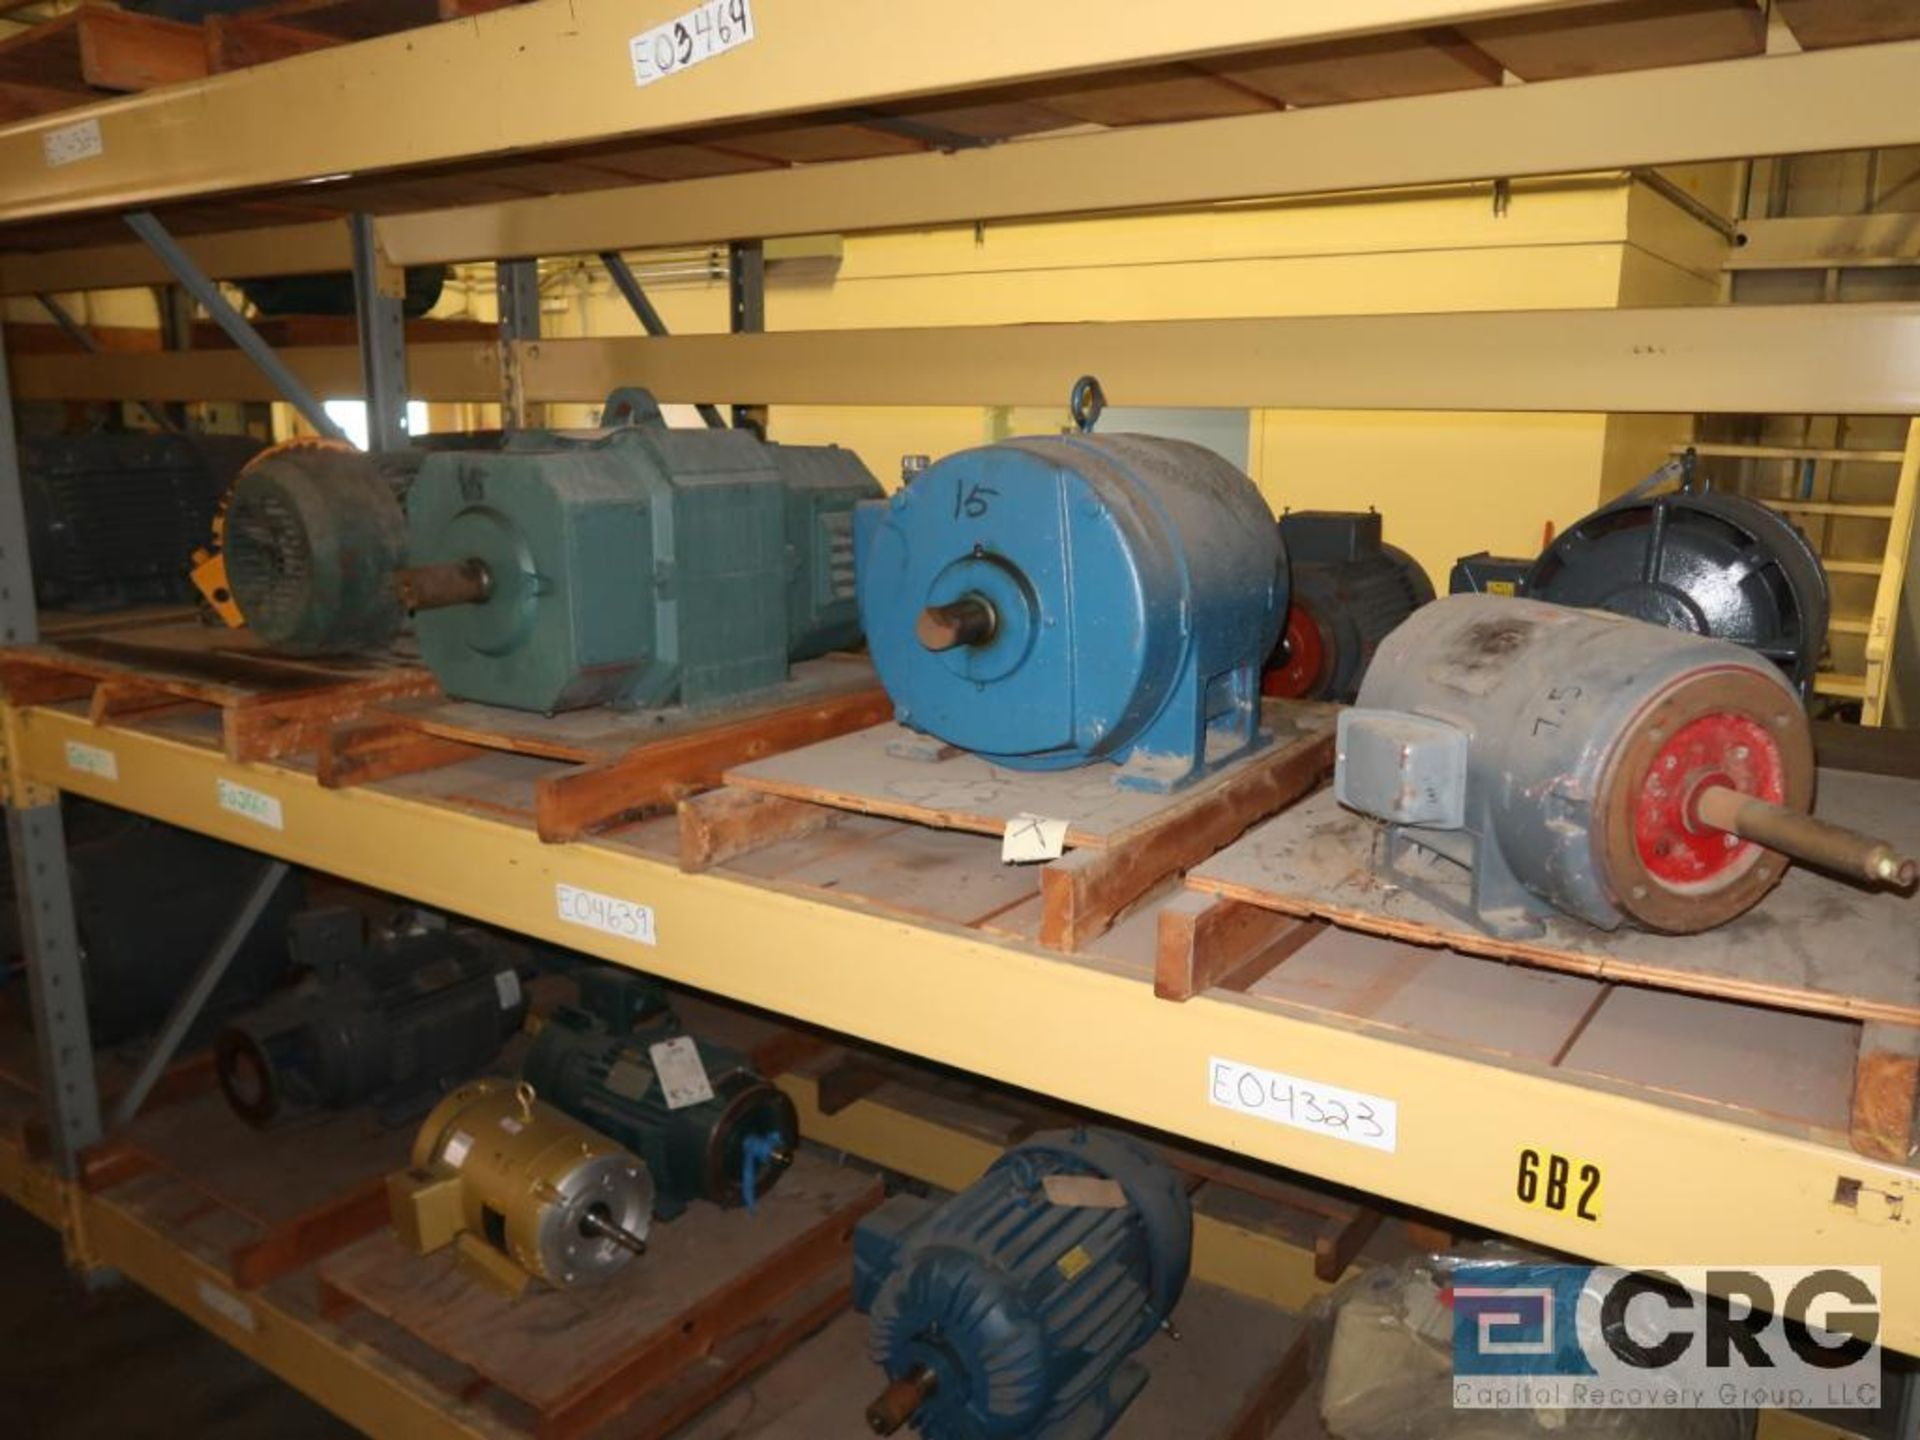 Lot of (29) assorted 15 HP, 10 HP, and 7.5 HP motors on (7) shelves, some with gear drives (Motor - Image 6 of 11